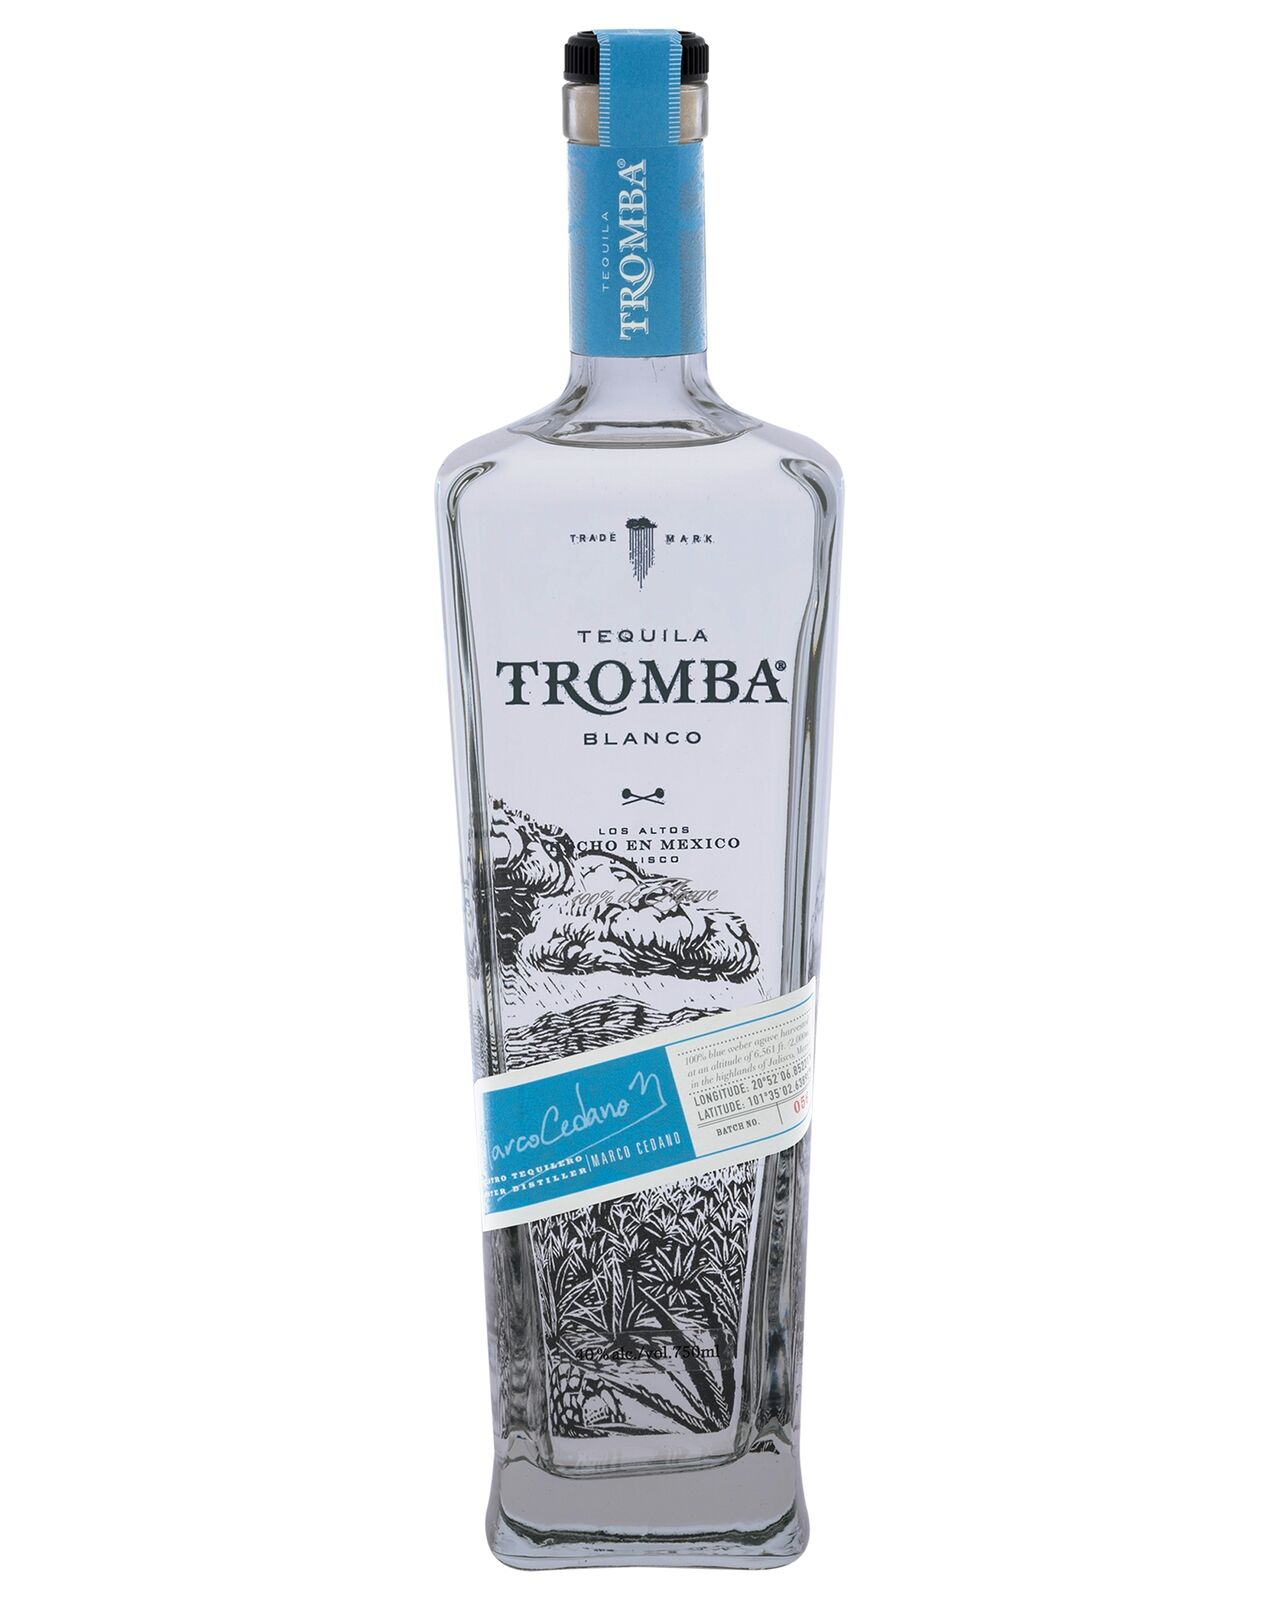 Tromba Blanco Tequila case of 6 750mL Los Altos highlands of Jalisco